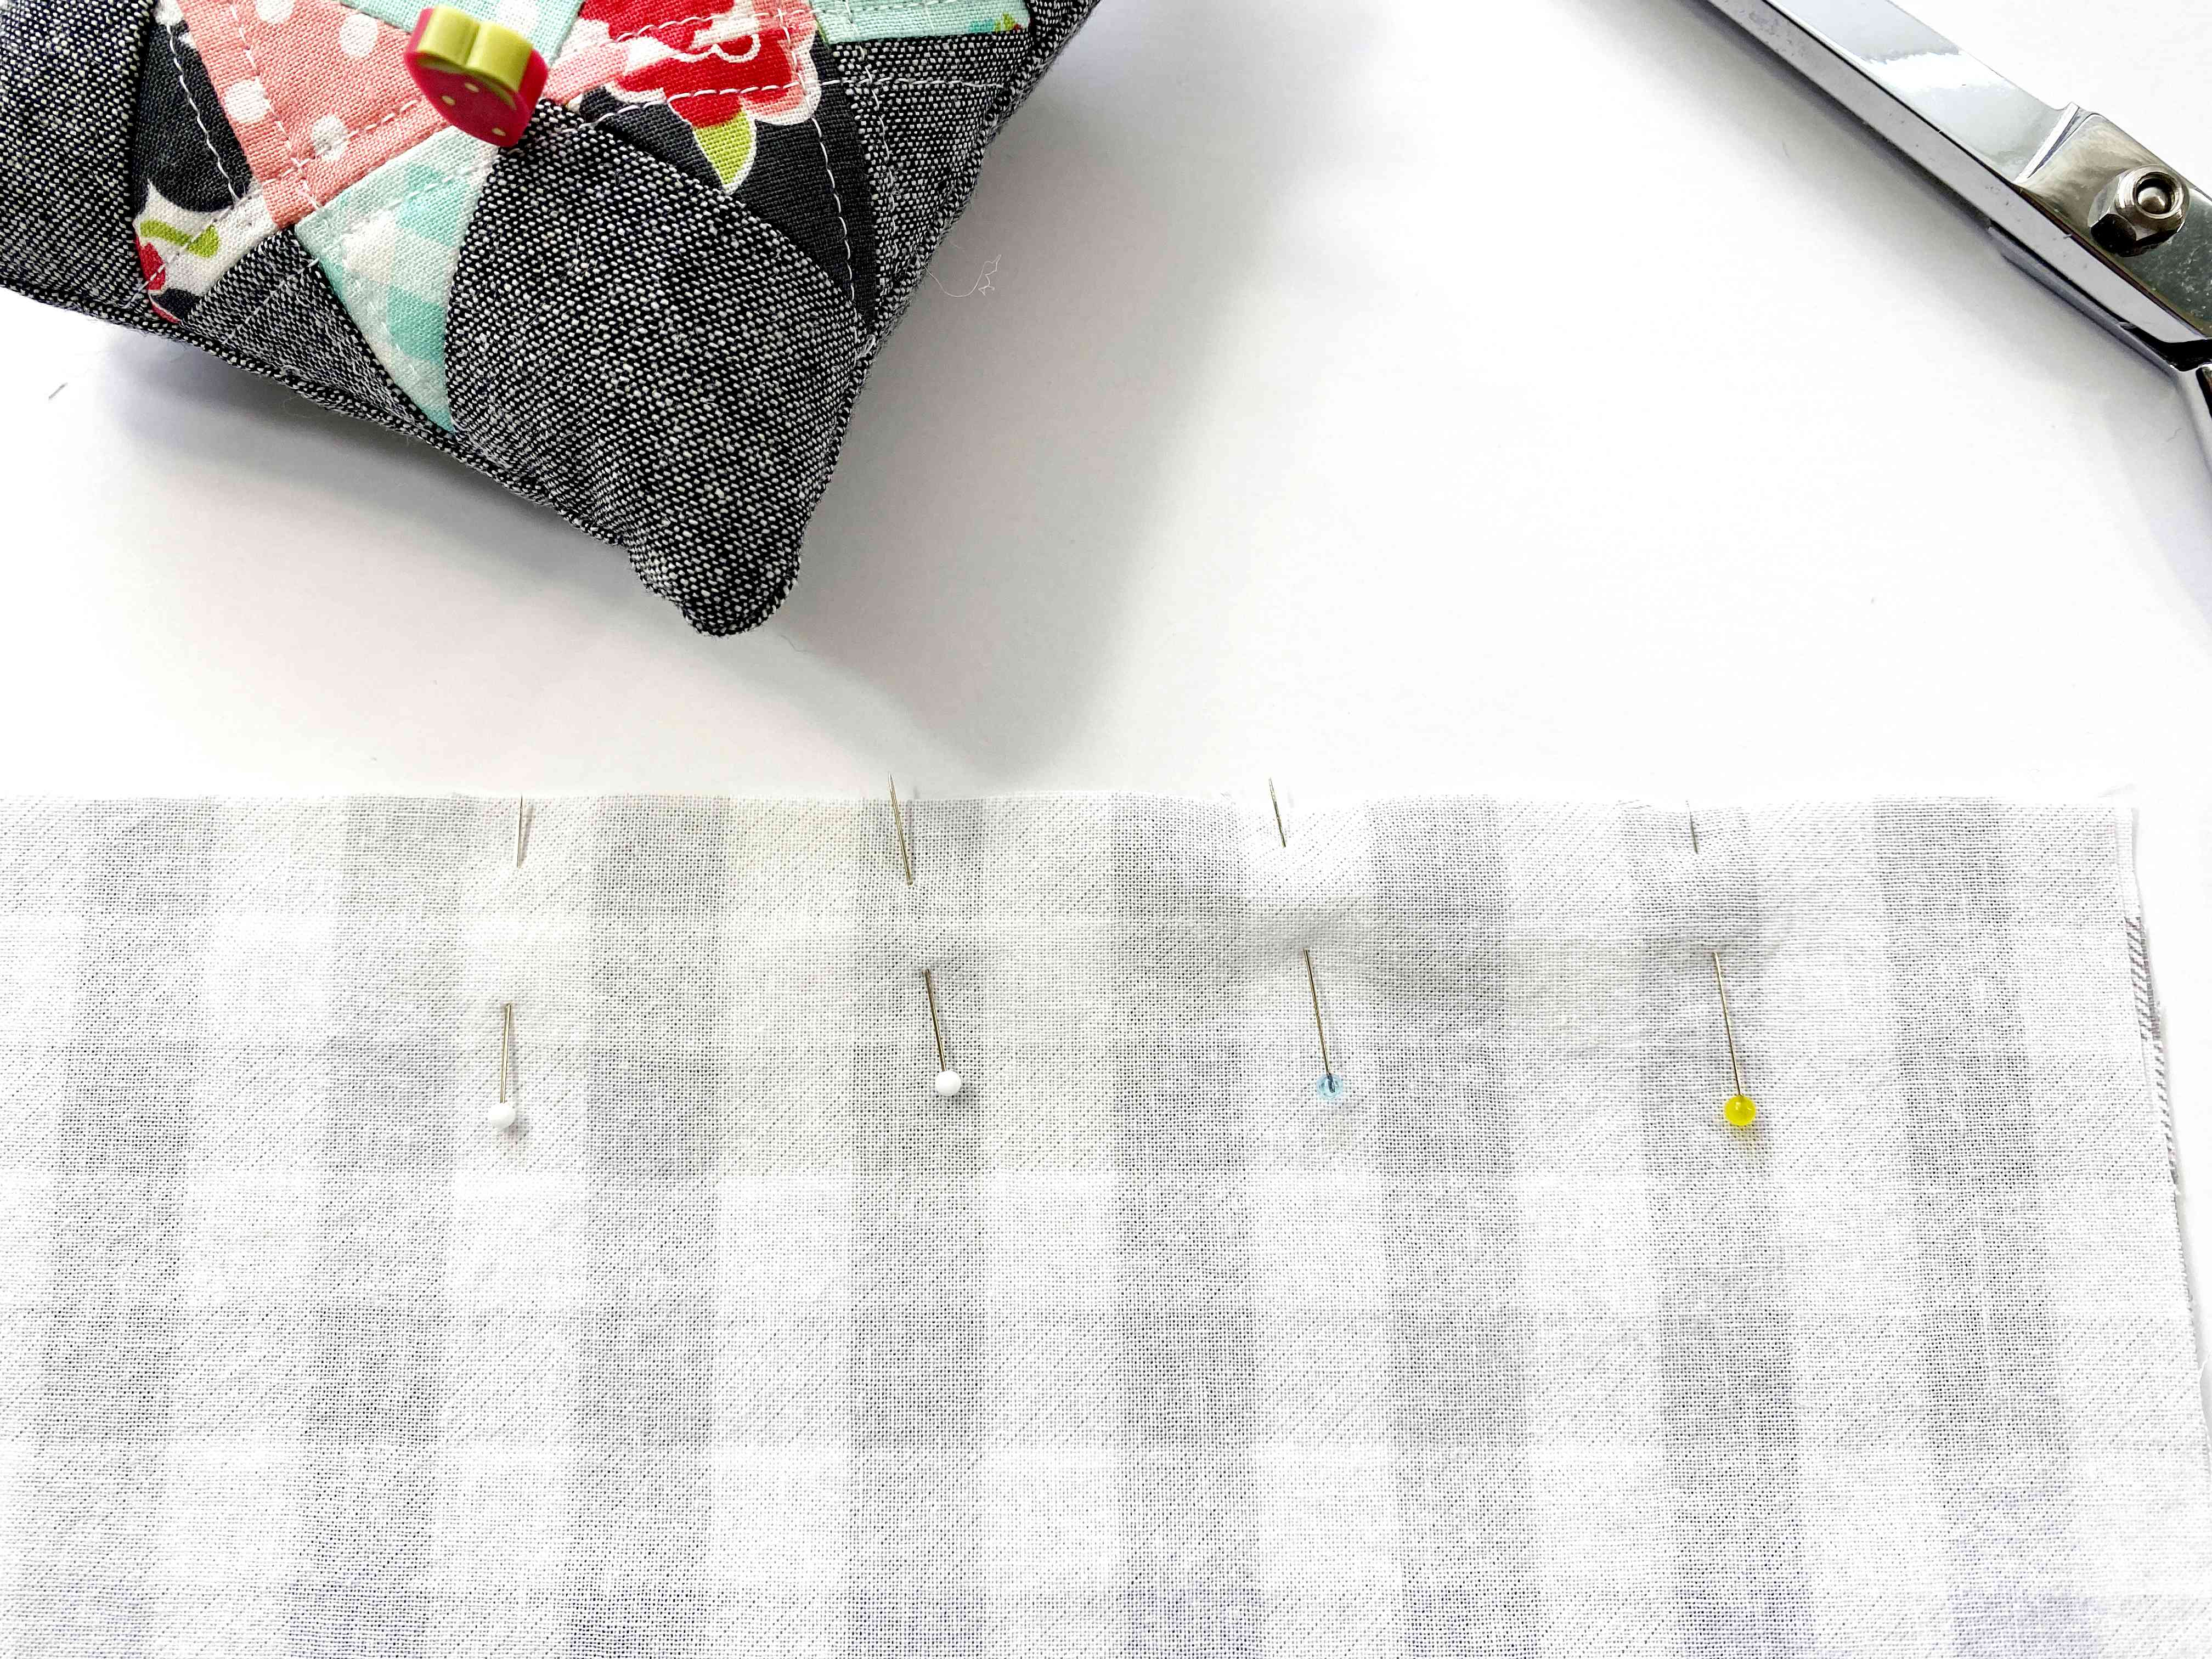 Pins in fabric, scissors, and a pincushion